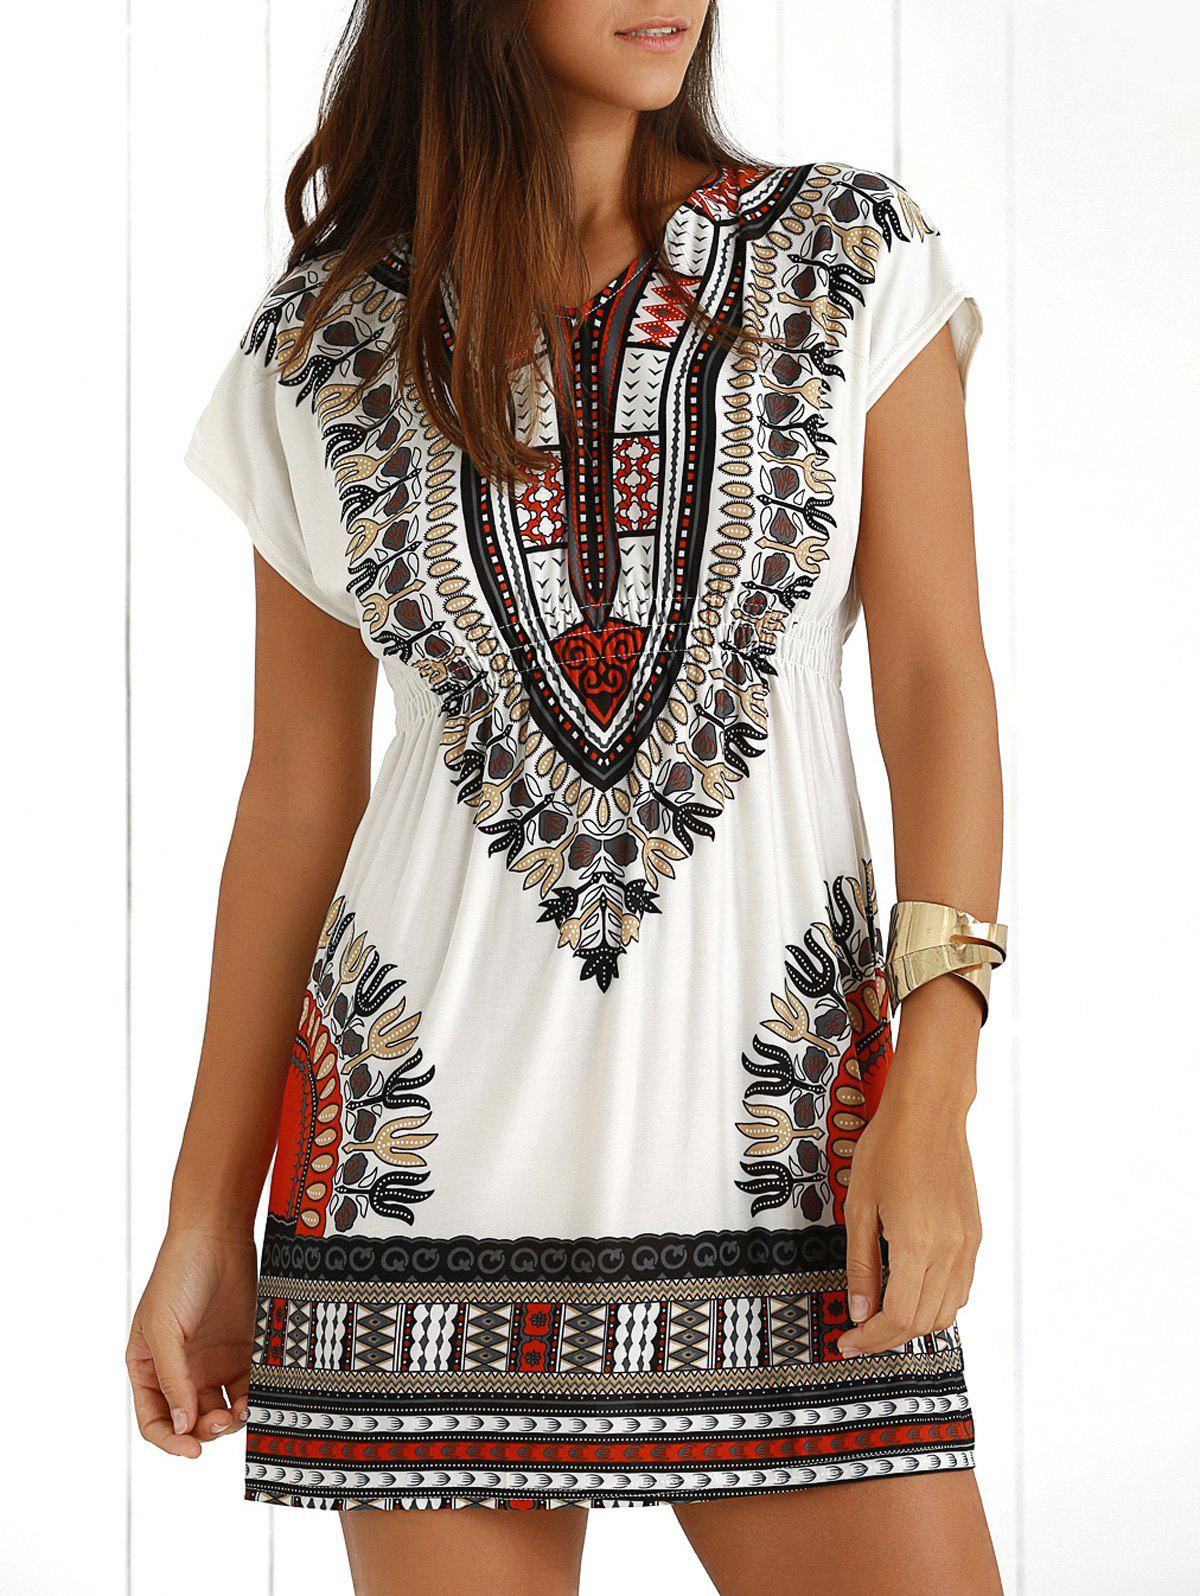 Casual Ethnic Summer Mini DressWOMEN<br><br>Size: ONE SIZE; Color: JACINTH; Style: Casual; Material: Polyester; Silhouette: A-Line; Dresses Length: Mini; Neckline: V-Neck; Sleeve Length: Short Sleeves; Pattern Type: Print; With Belt: No; Season: Summer; Weight: 0.1950kg; Package Contents: 1 x Dress;